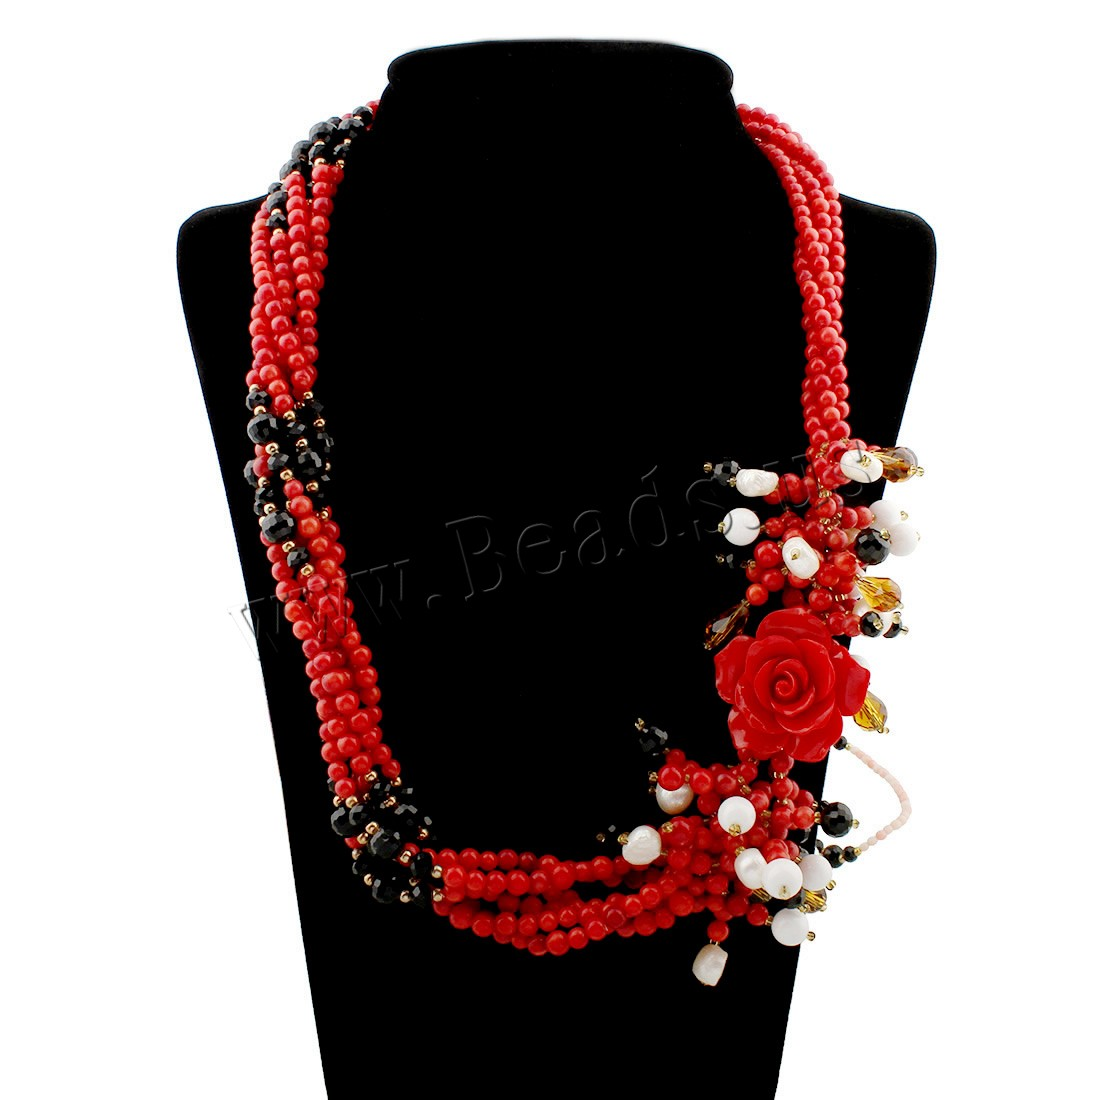 Buy Coral Sweater Chain Necklace Natural Coral Freshwater Pearl & Crystal zinc alloy spring ring clasp woman & faceted 33x35x13mm Sold Per Approx 23.5 Inch Strand